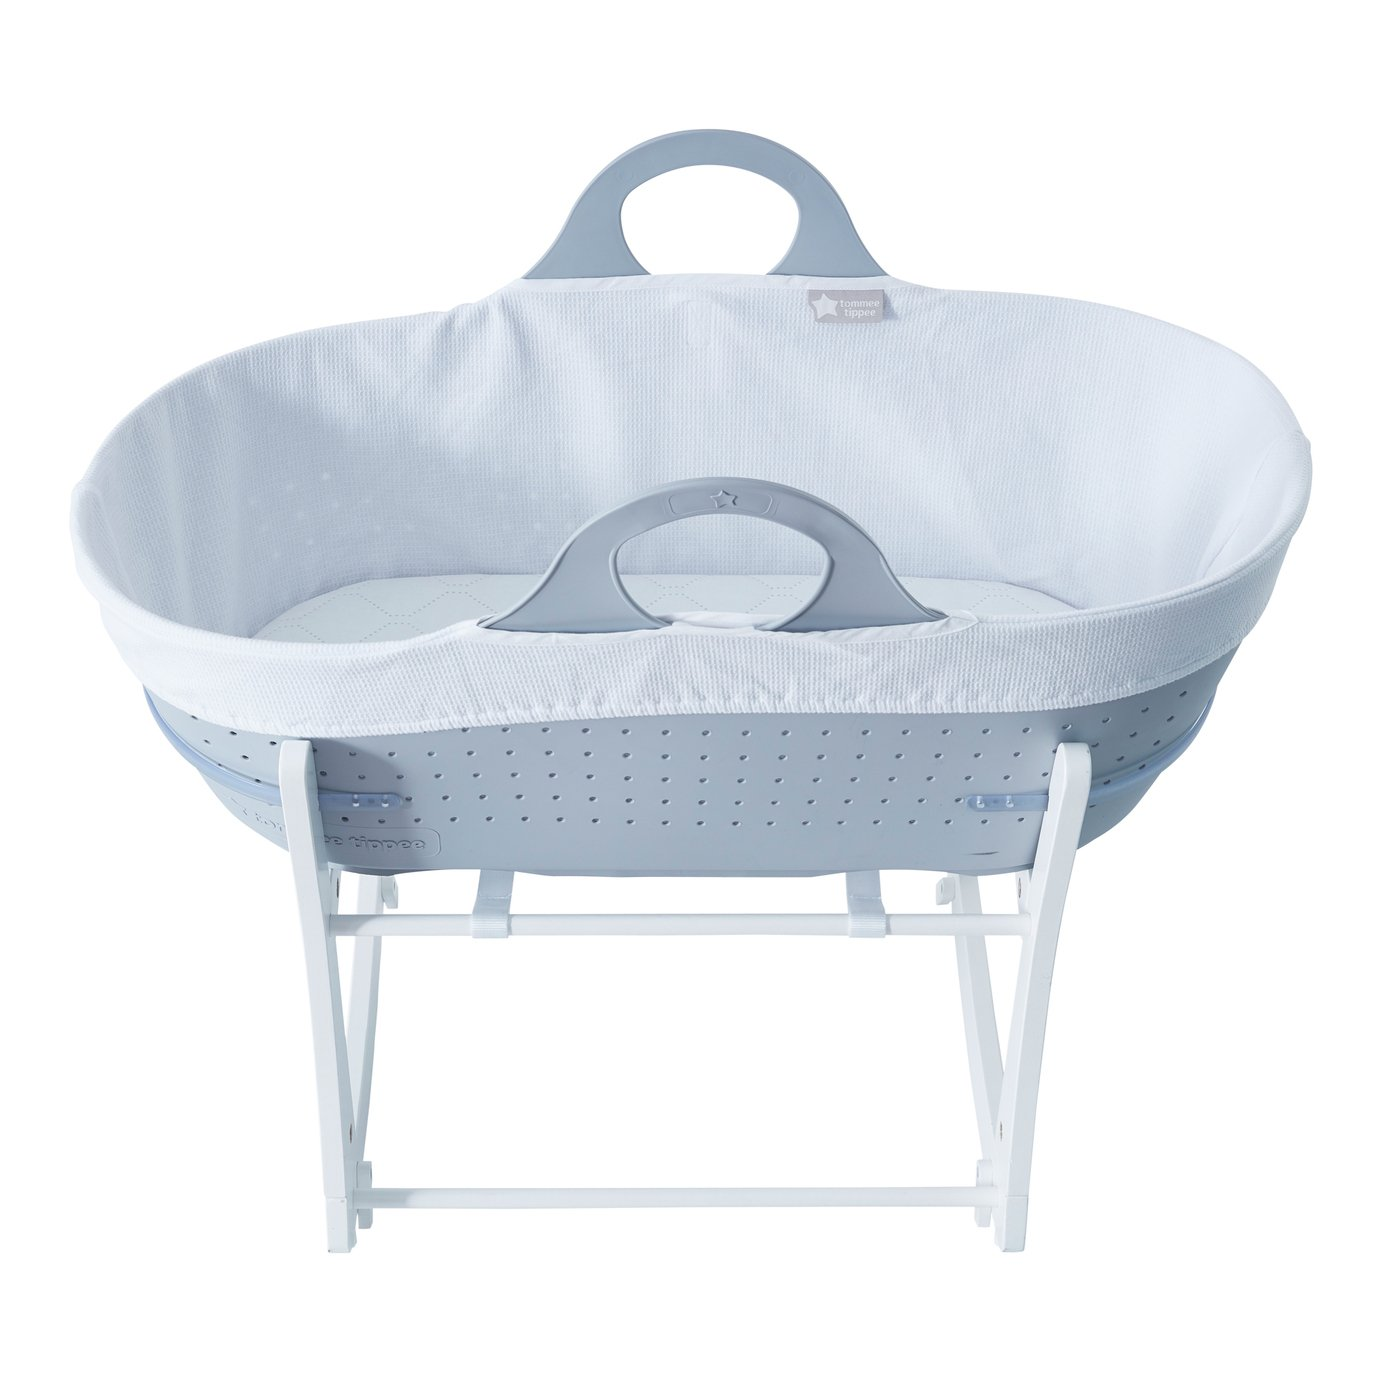 Tommee Tippee Sleepee Basket and Stand - Grey